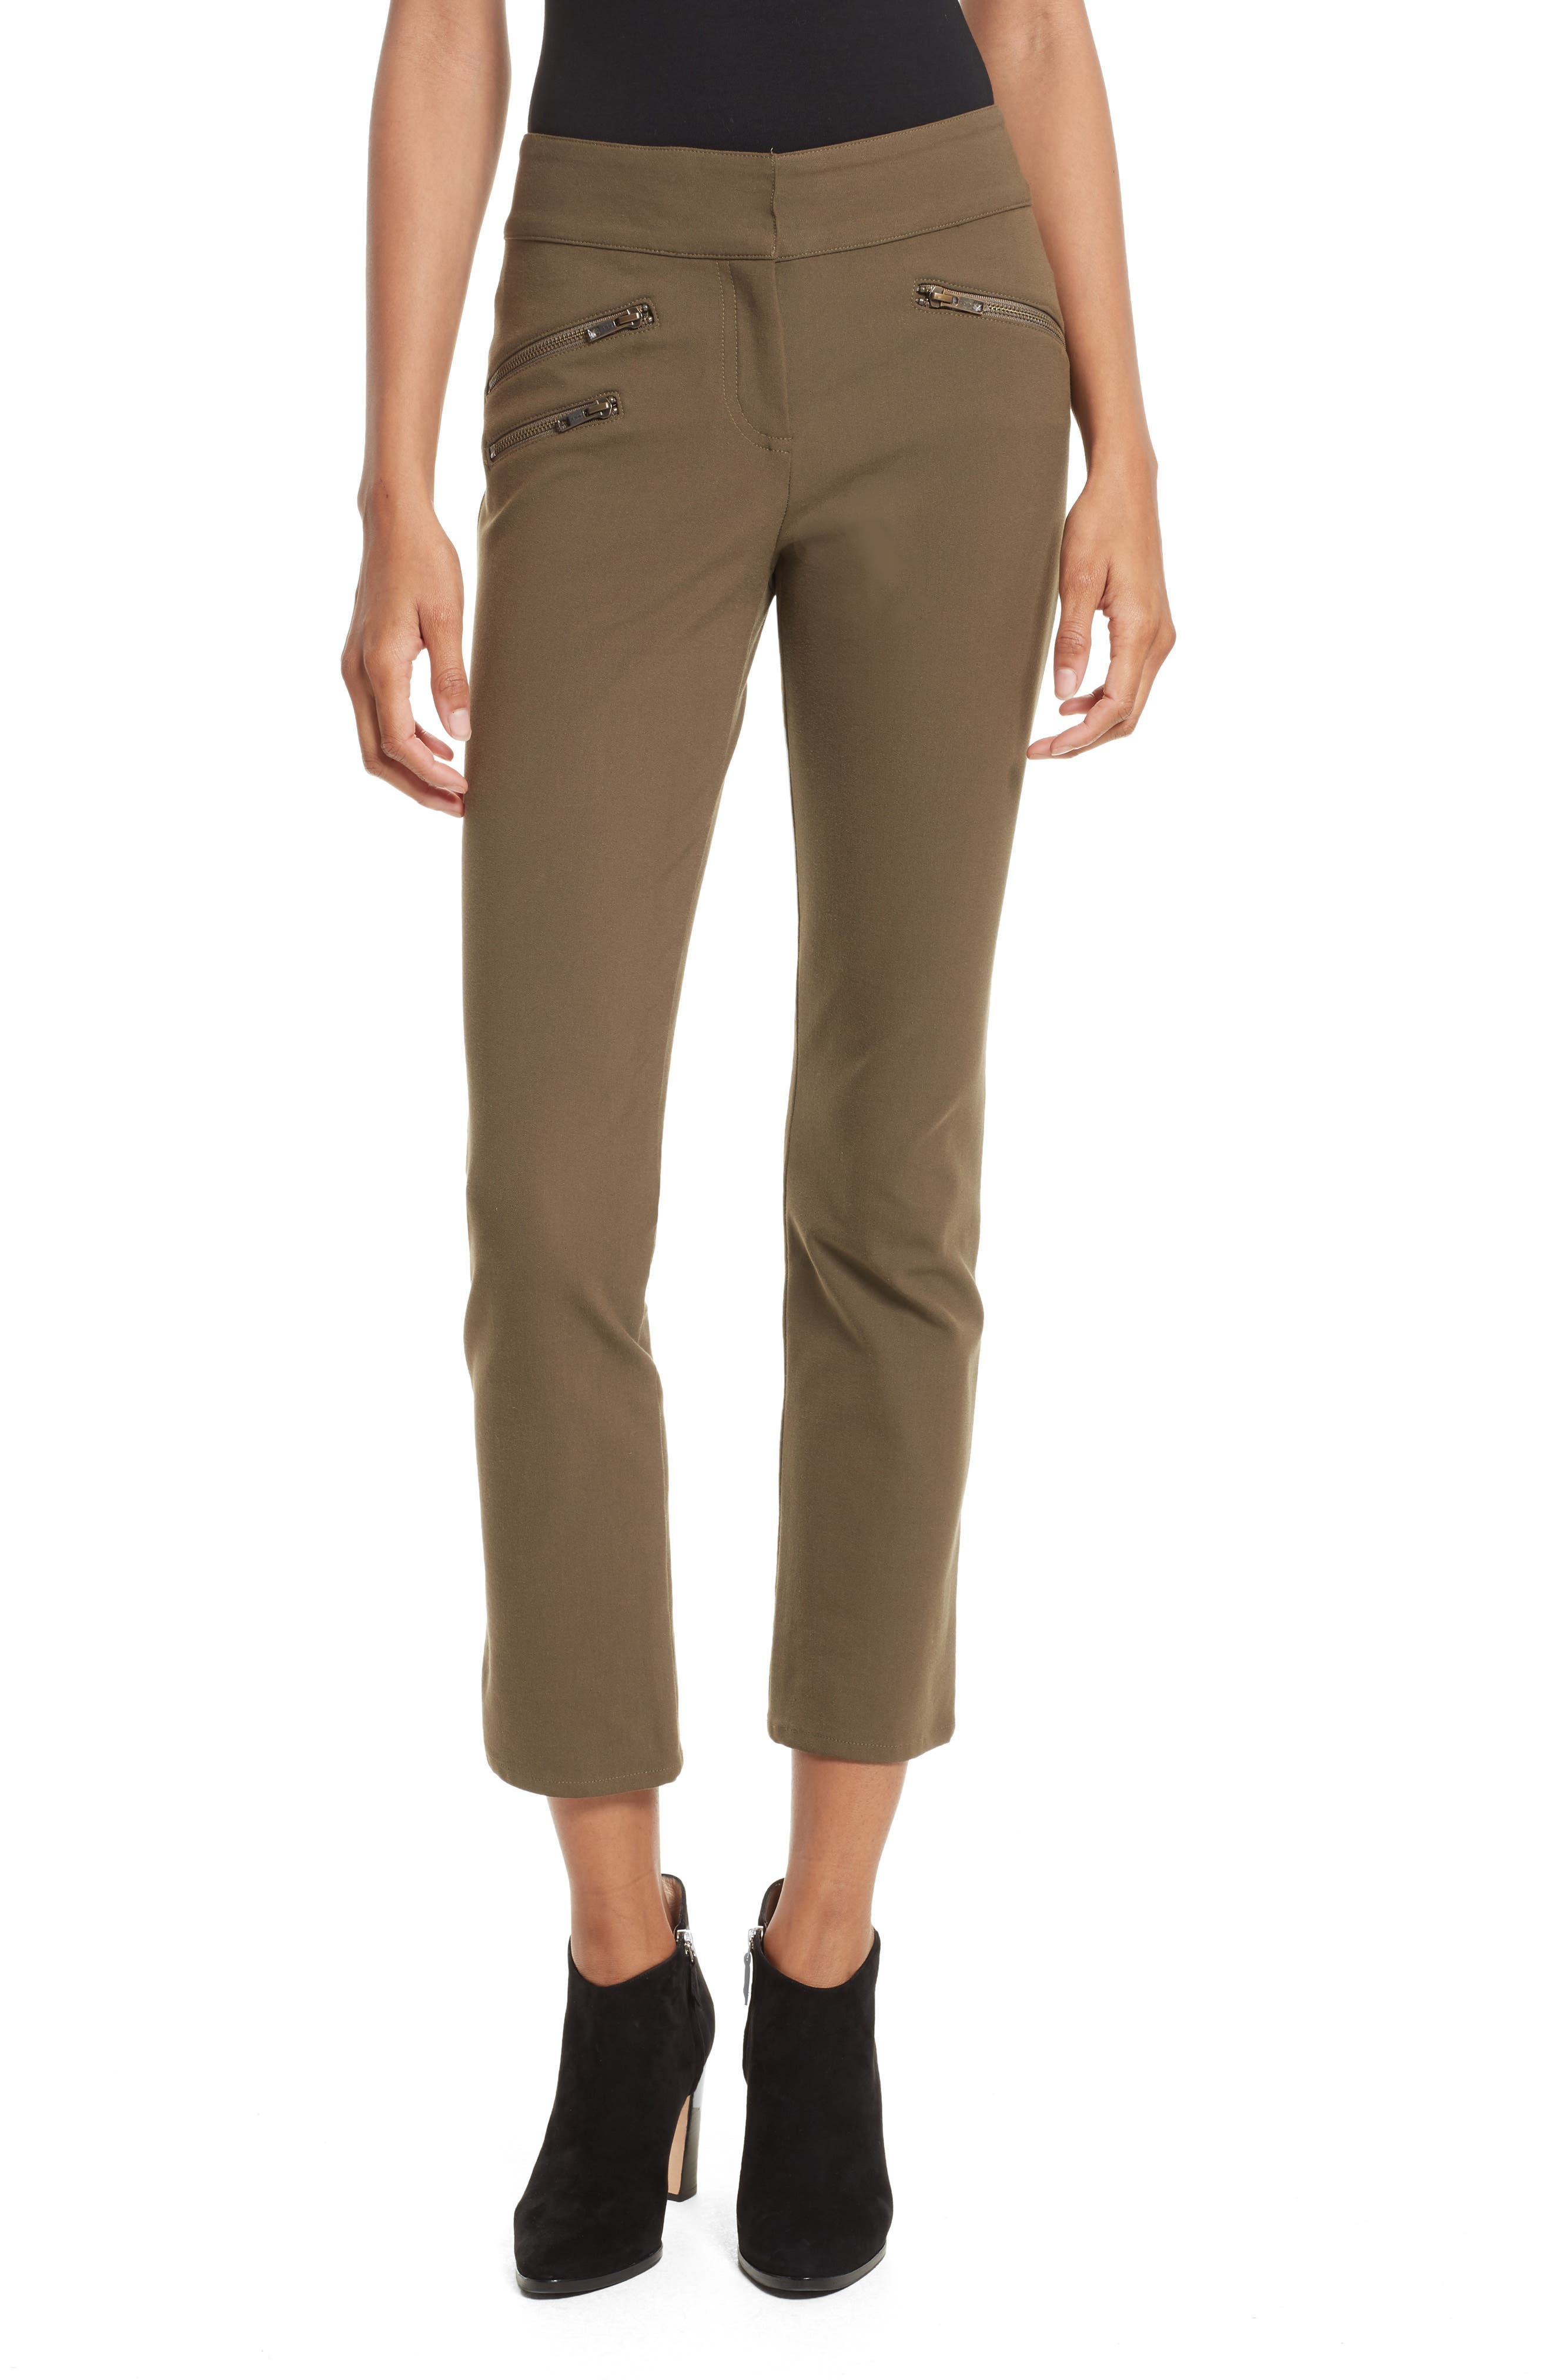 Adelaide Zipper Detail Crop Pants,                             Main thumbnail 1, color,                             Army Green